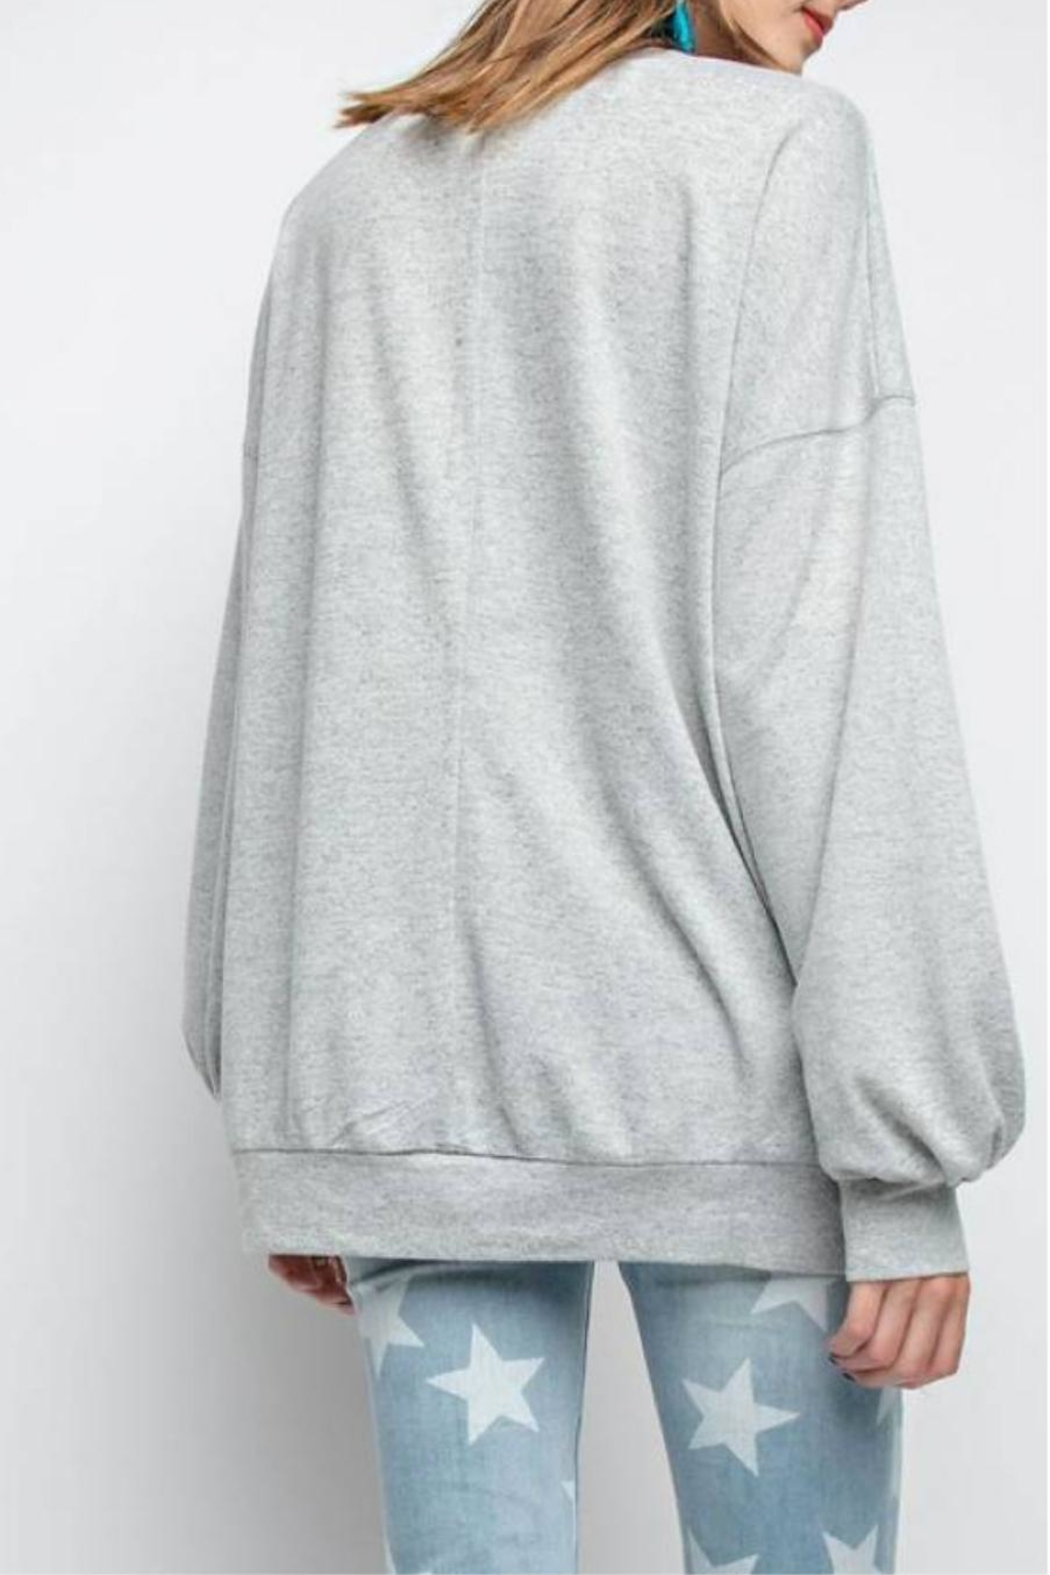 easel Rickie Pullover Sweatshirt - Front Full Image